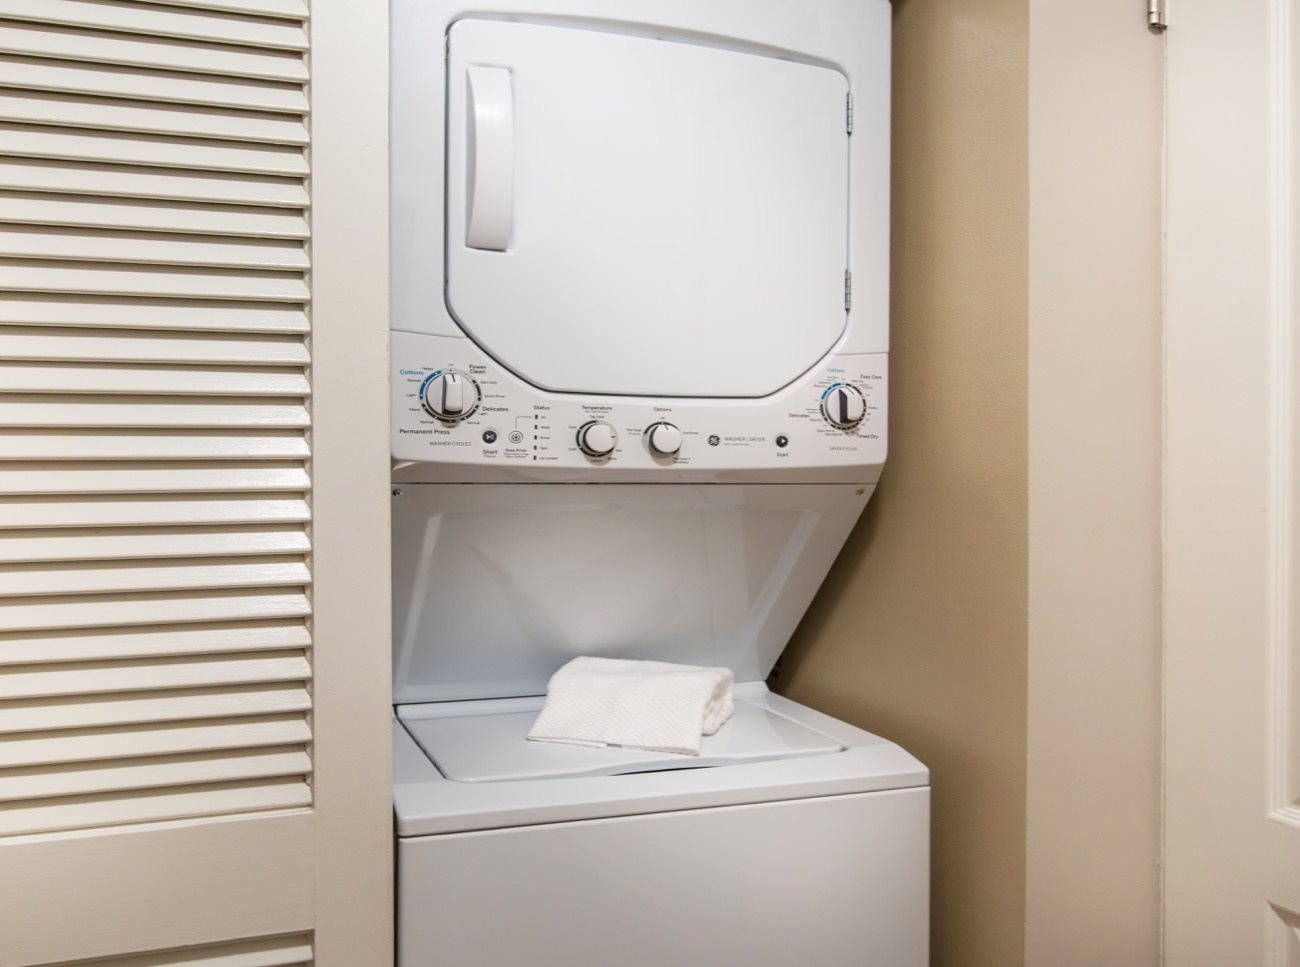 bay-tree-los-gatos-apartments-in-home-washer-dryer